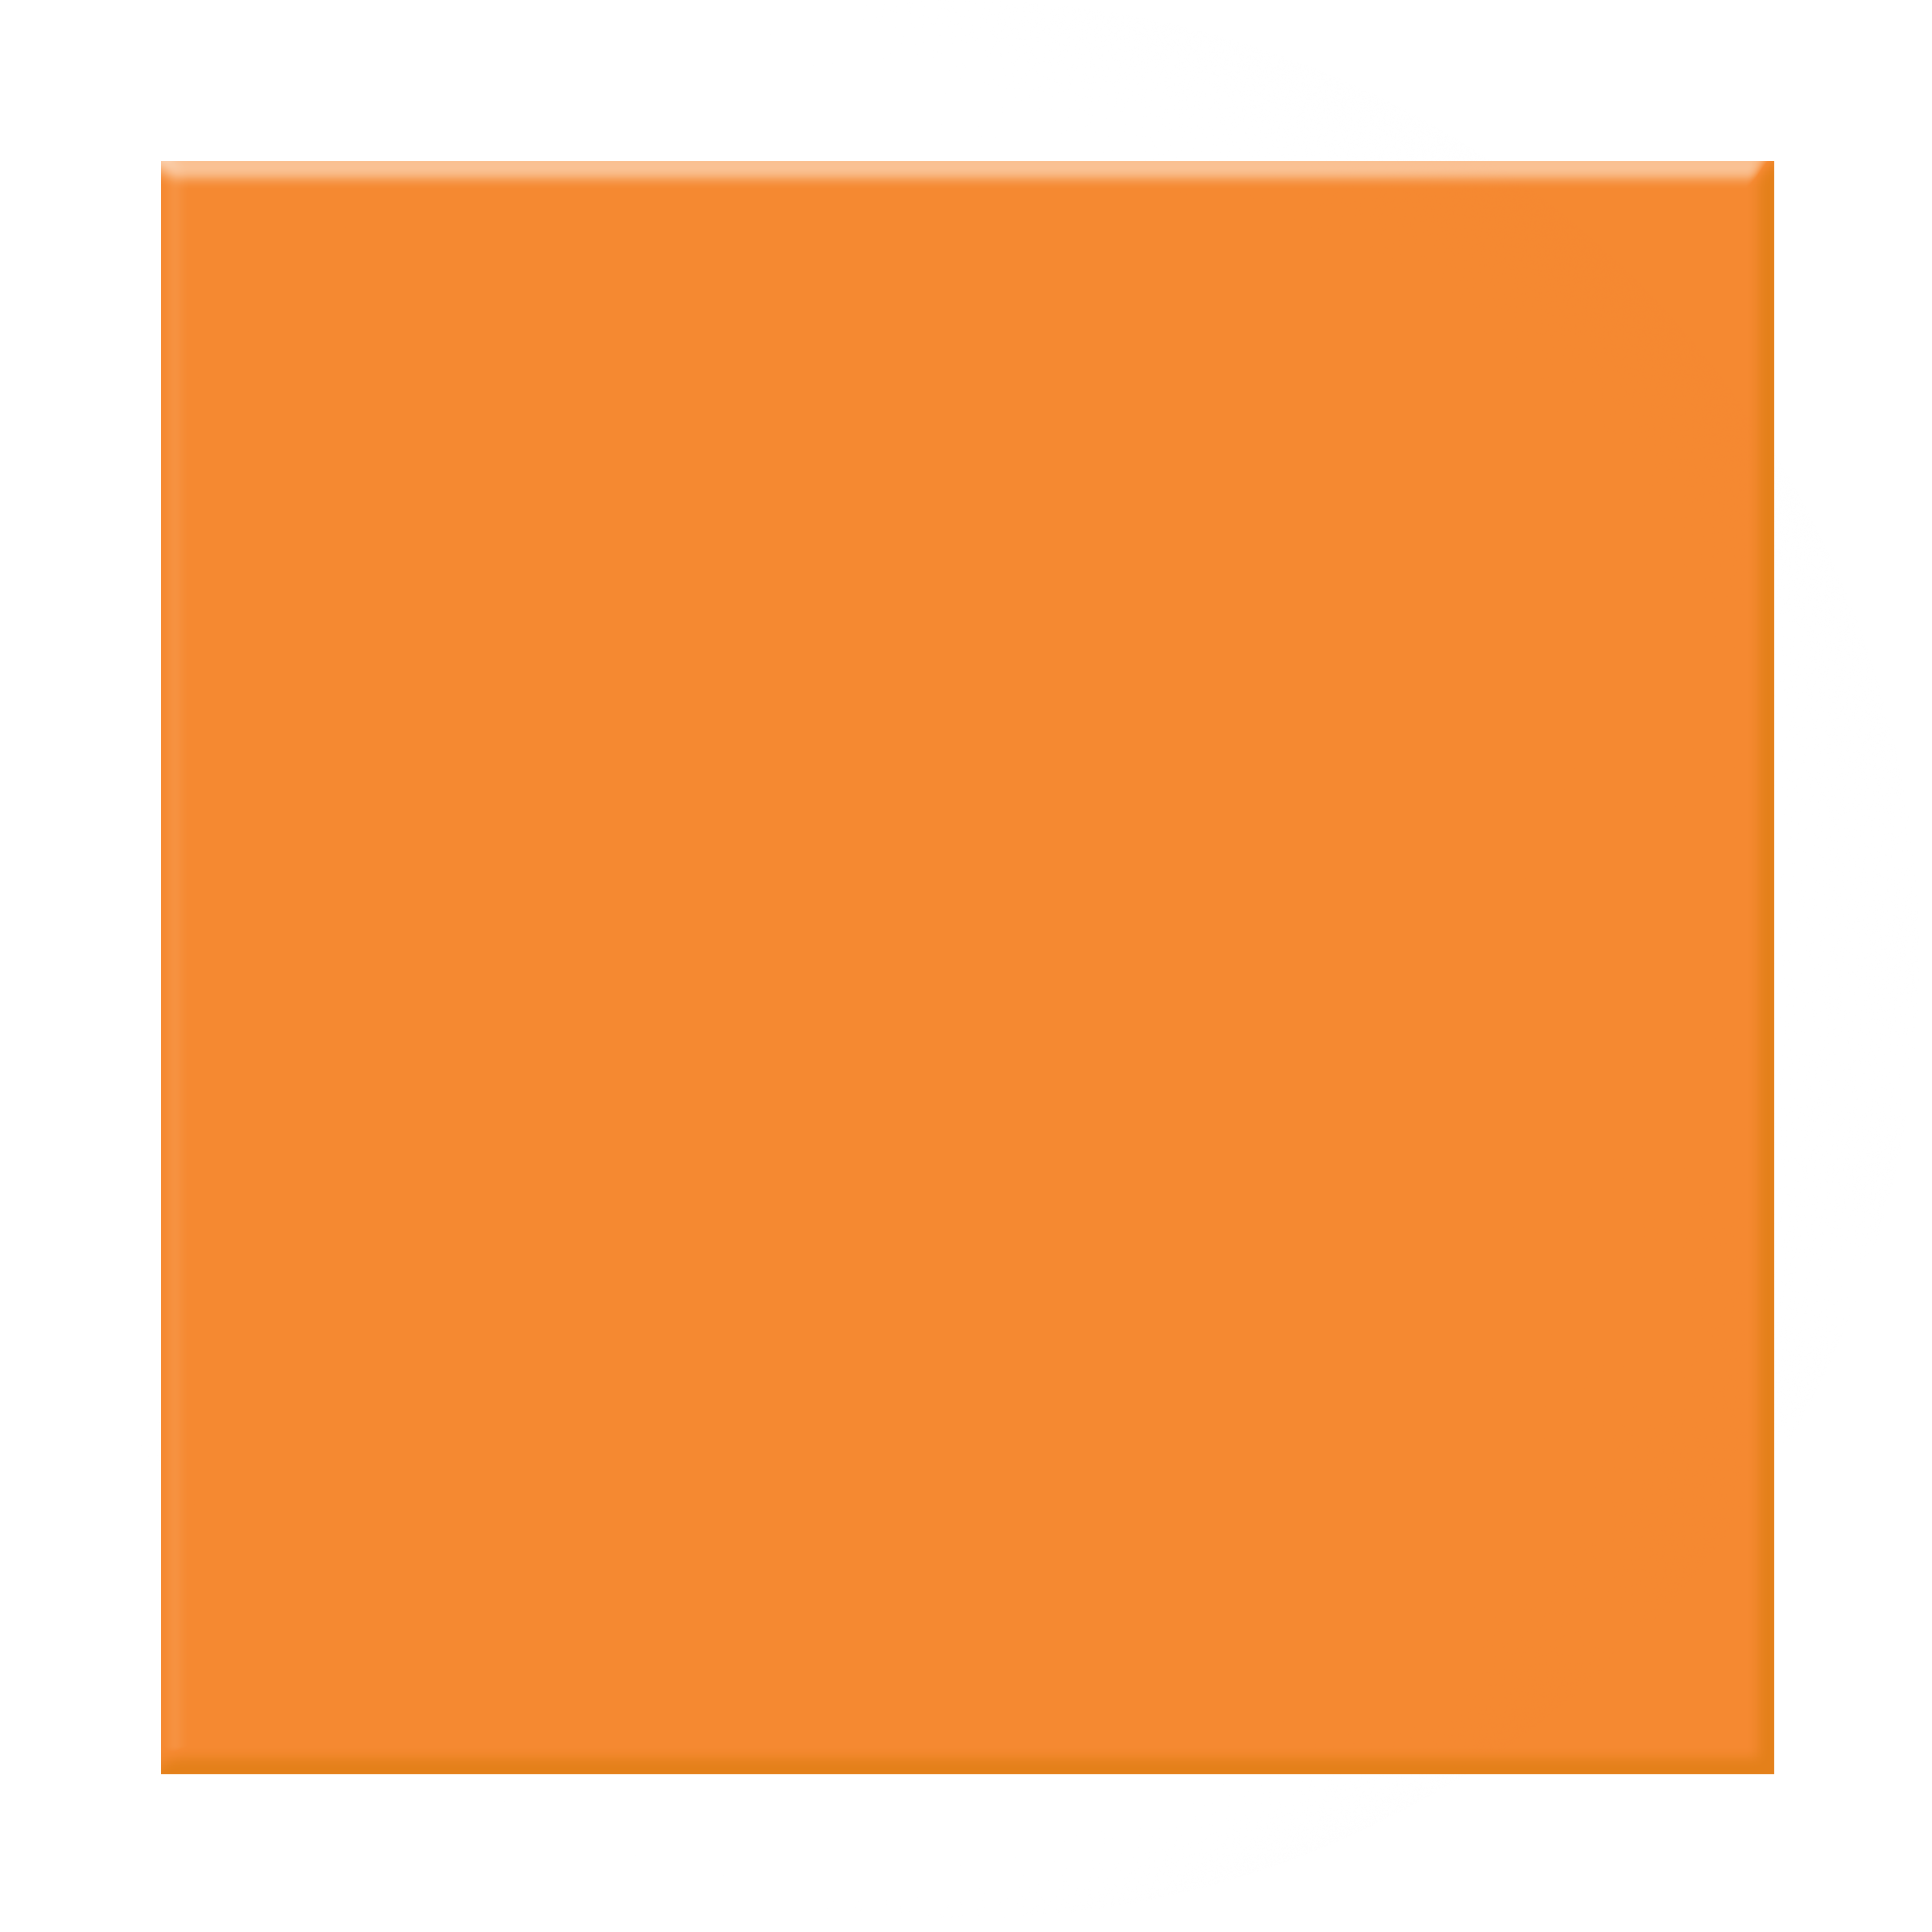 Orange square png. Image free icons and